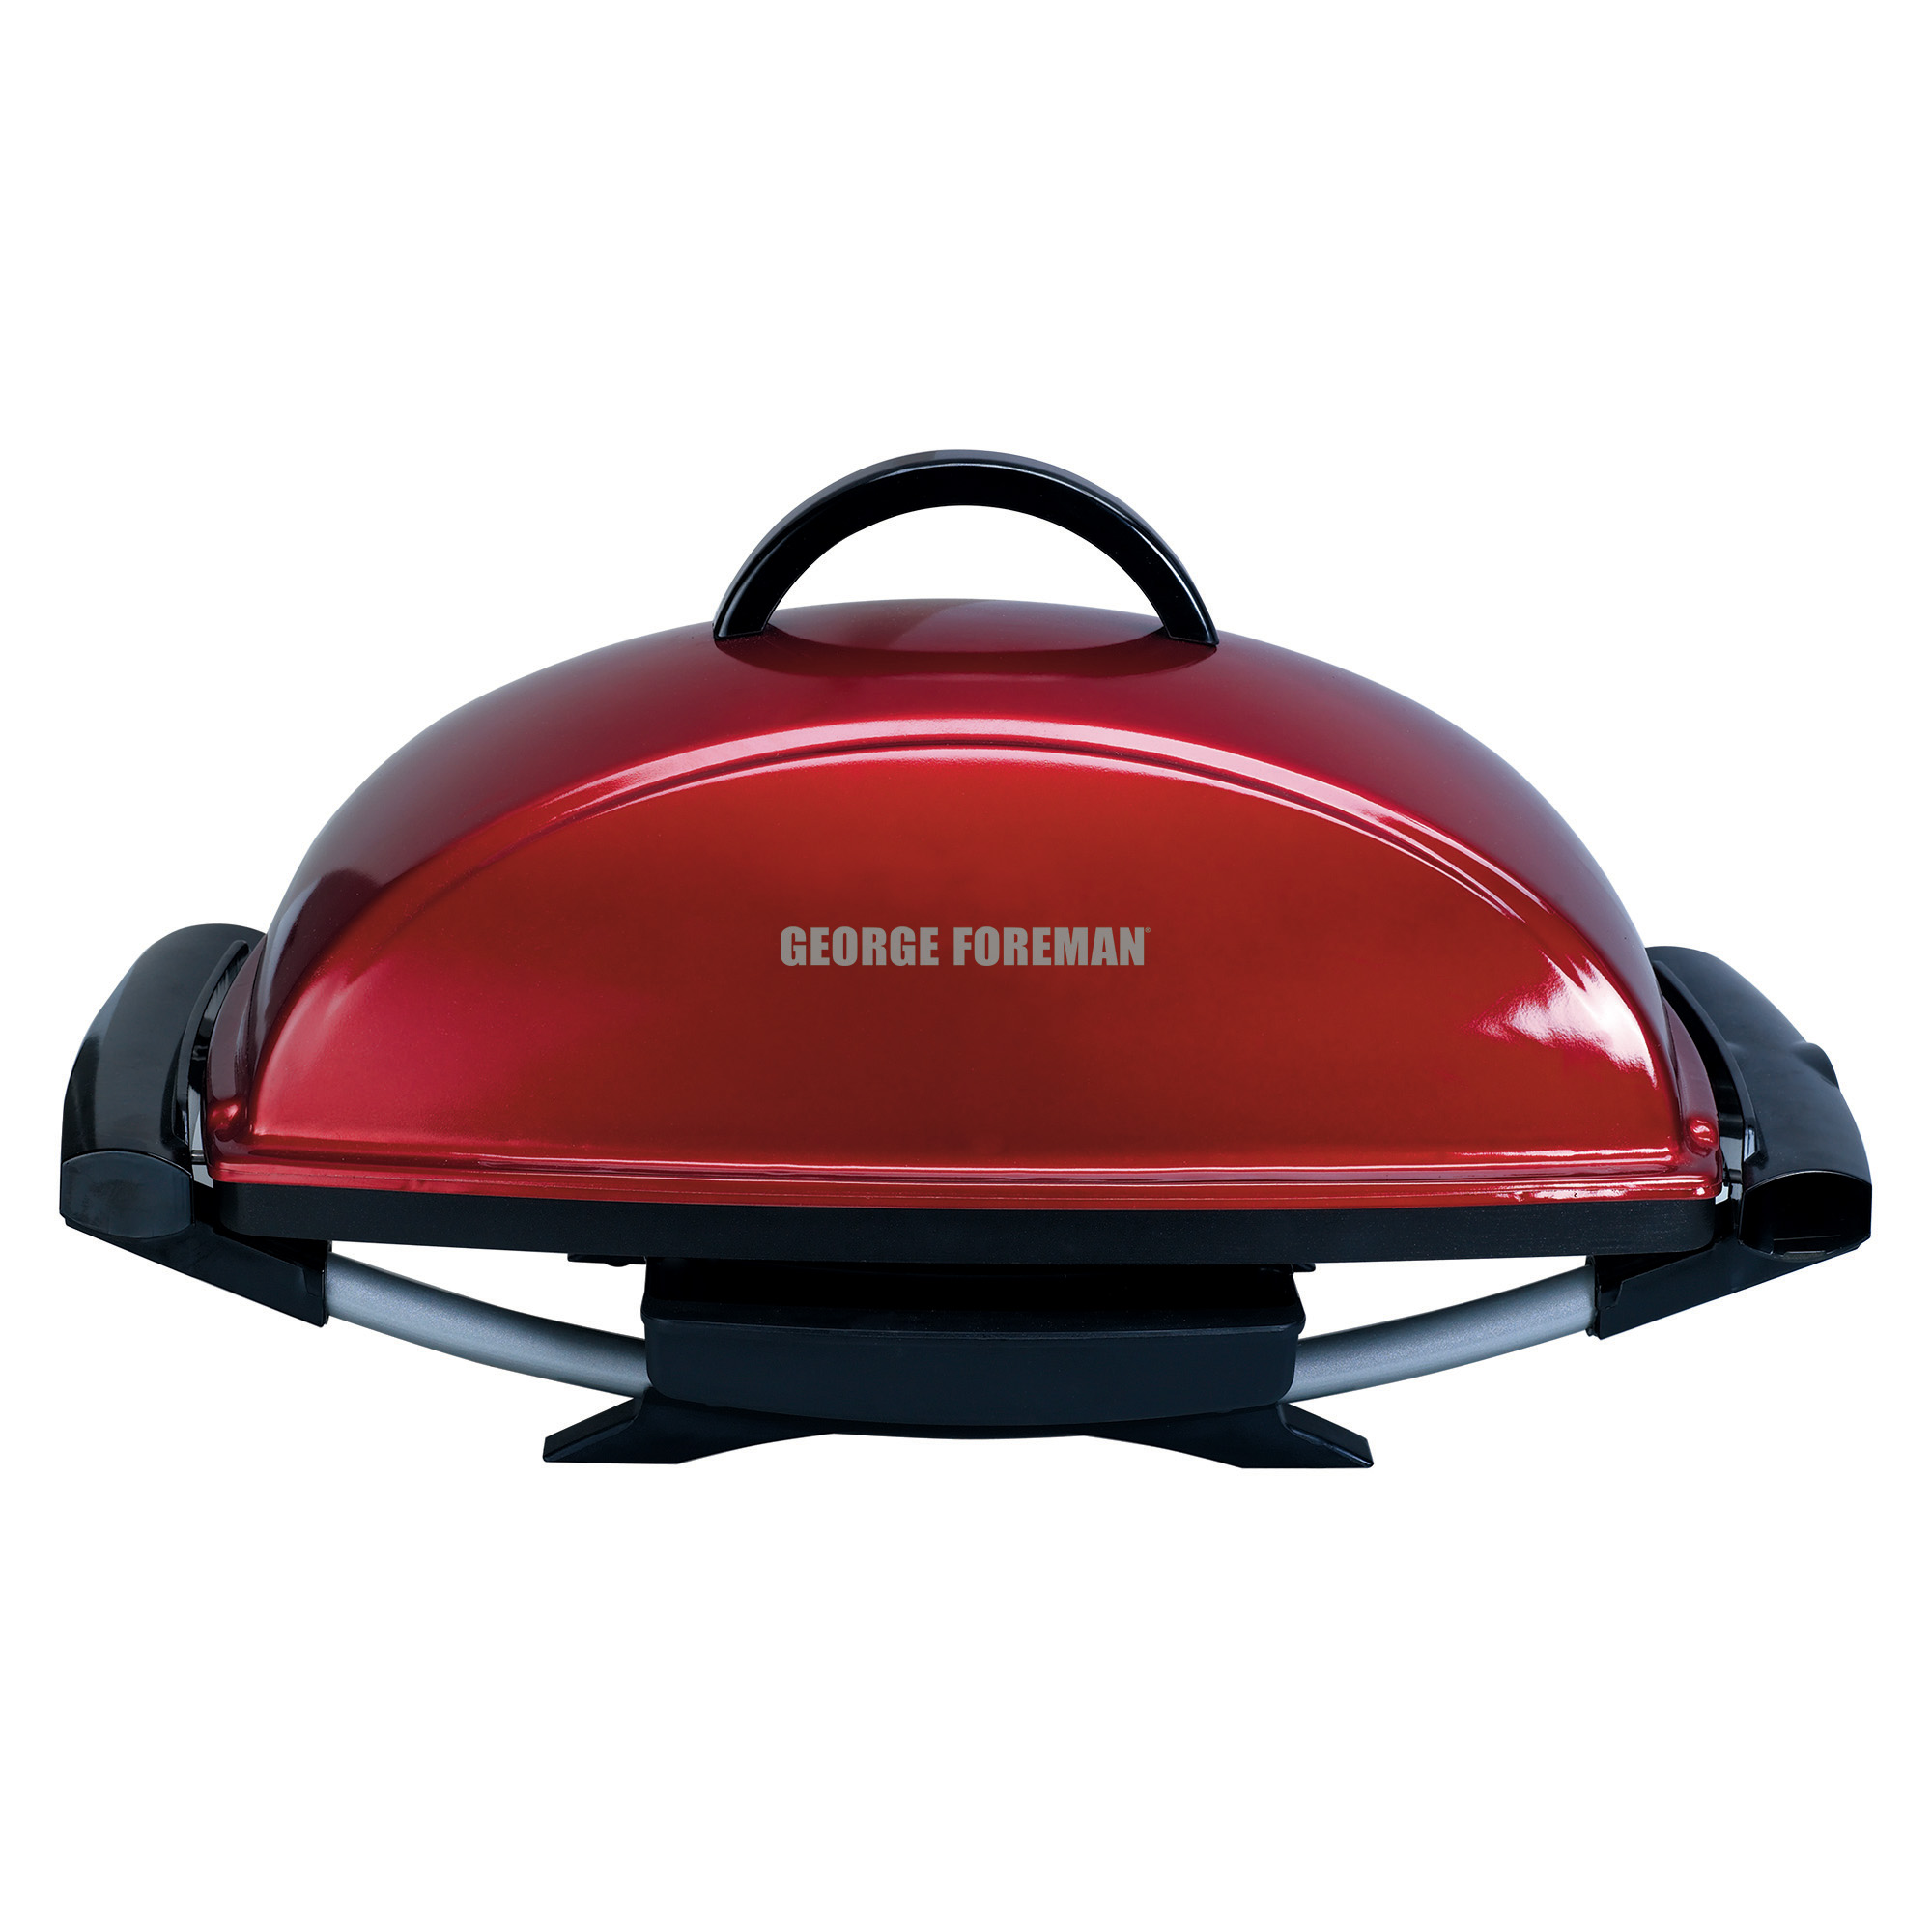 George Foreman 12-Serving Indoor Outdoor Rectangular Electric Grill, Red, GFO201R by George Foreman